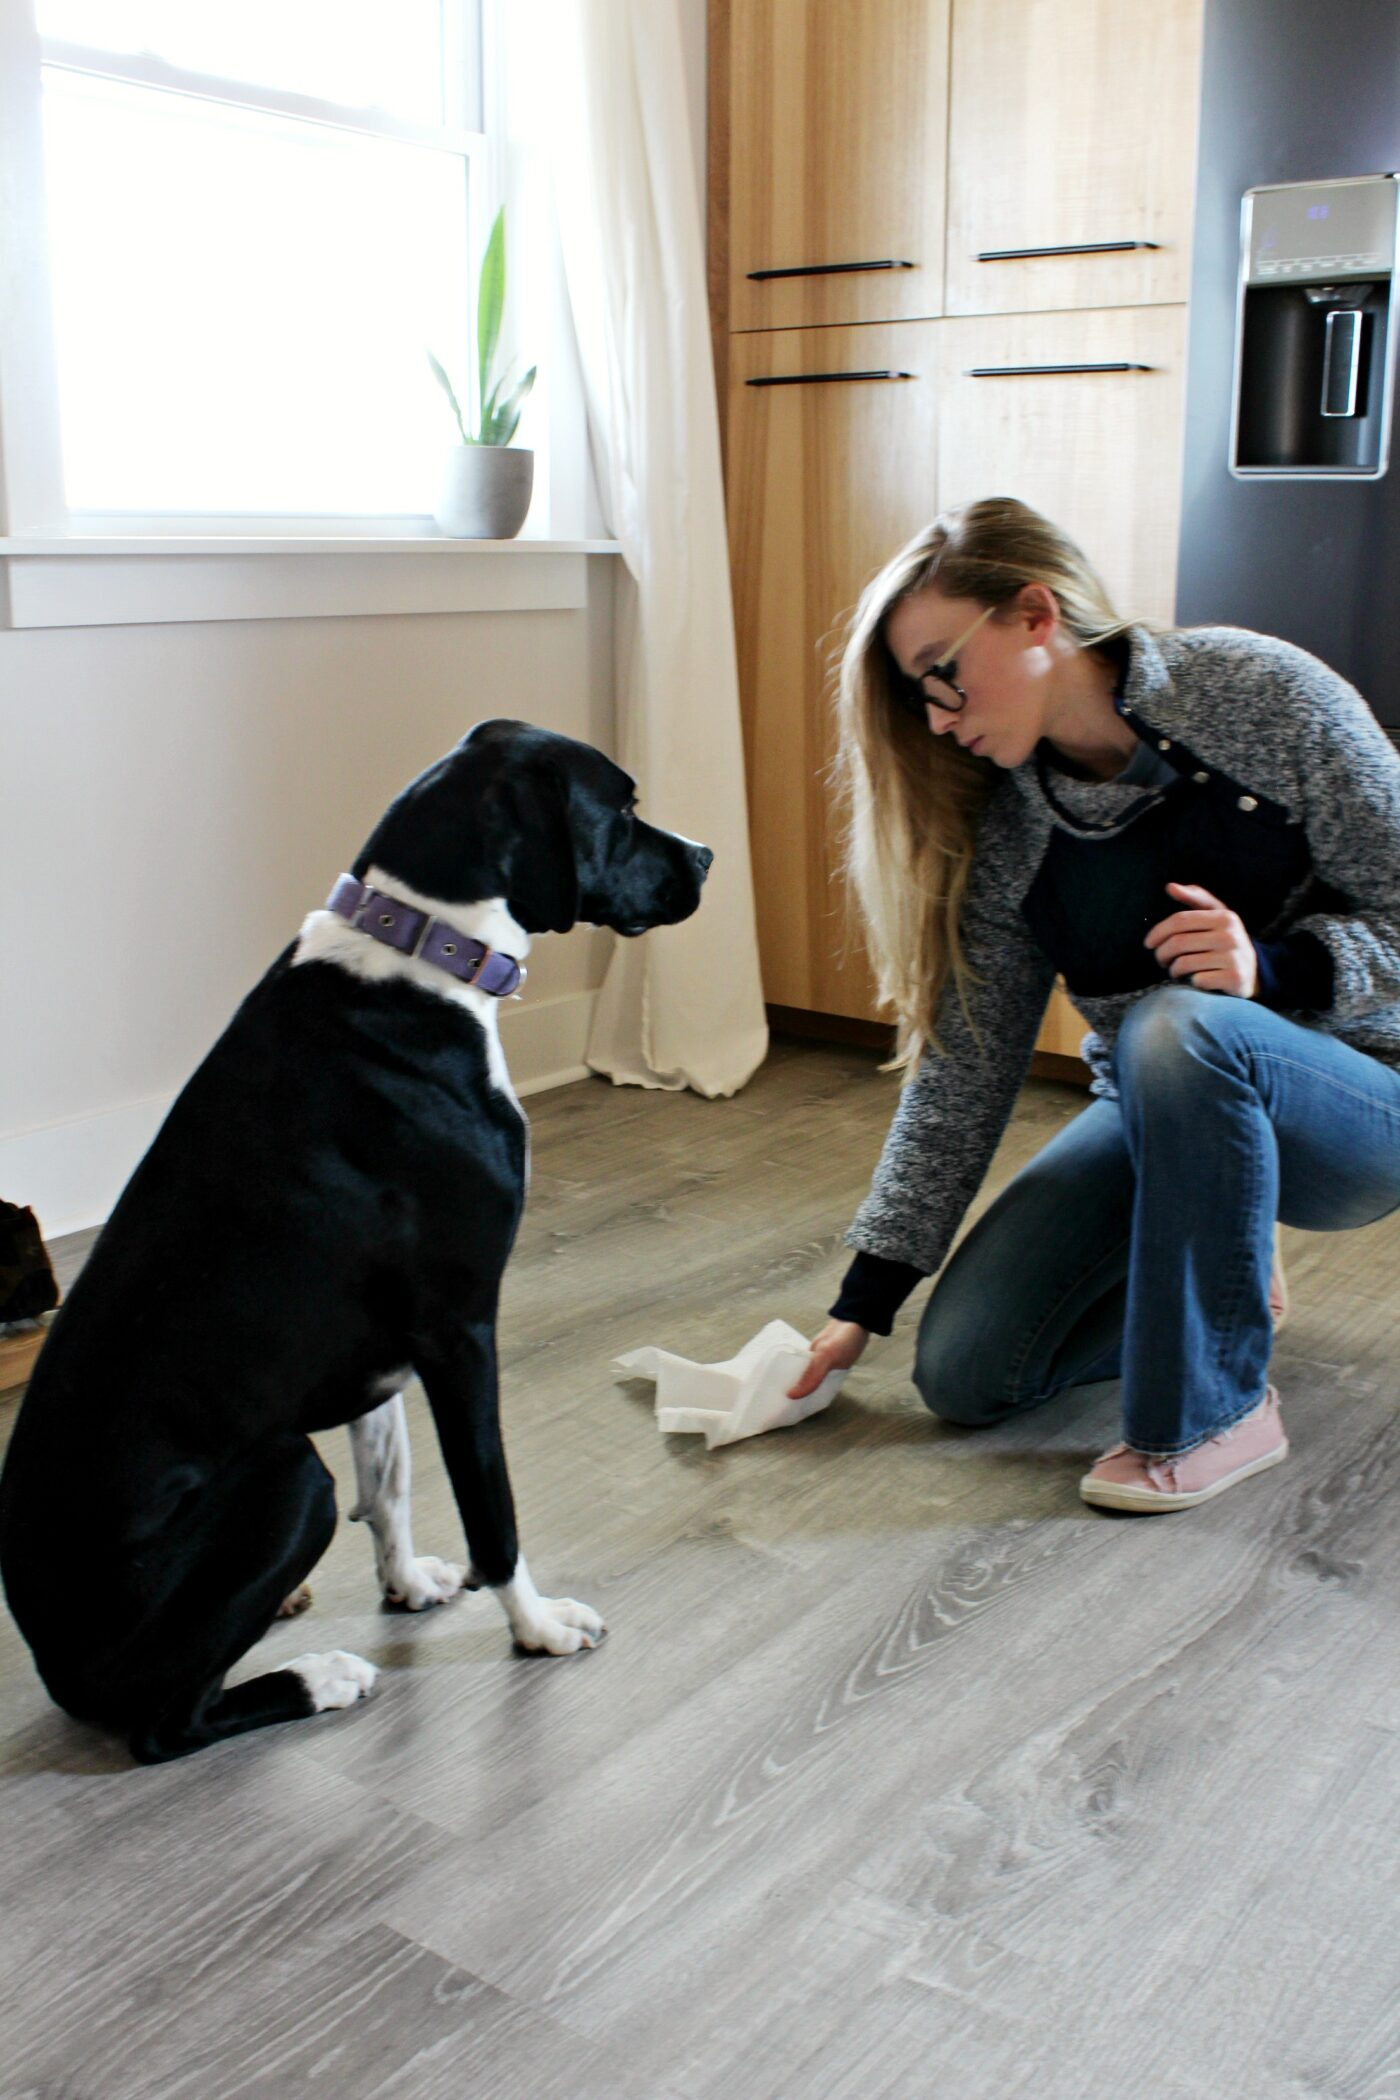 LifeProof vinyl flooring is easy to clean and great with pets